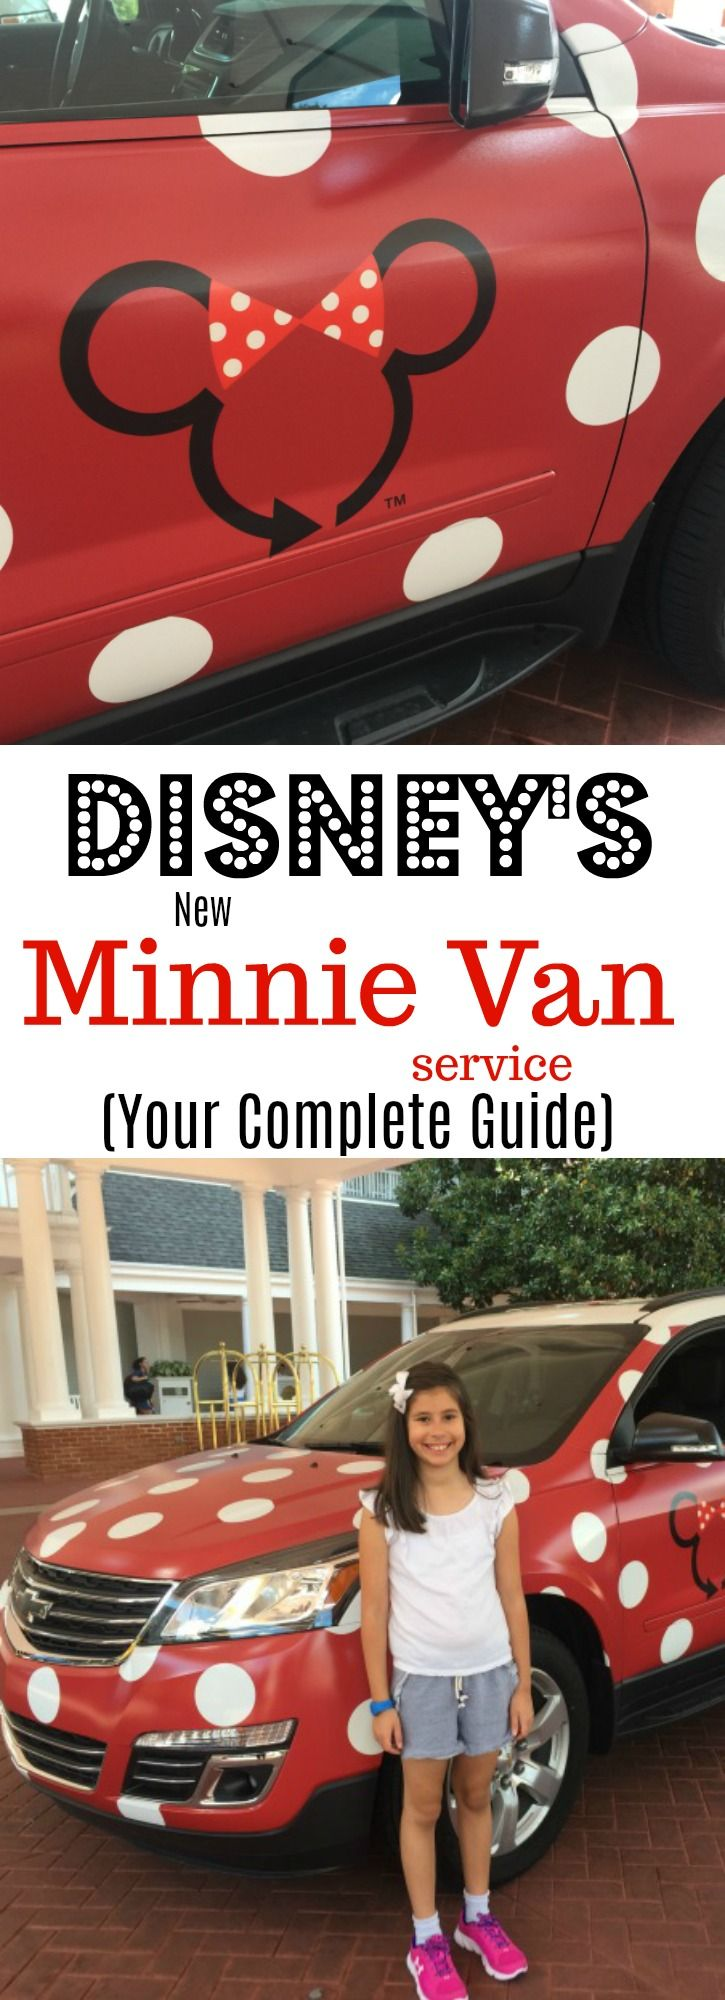 Disney's Minnie Van Service at Walt Disney World - our experience (and your questions answered)!  Disney World Tips and Tricks!